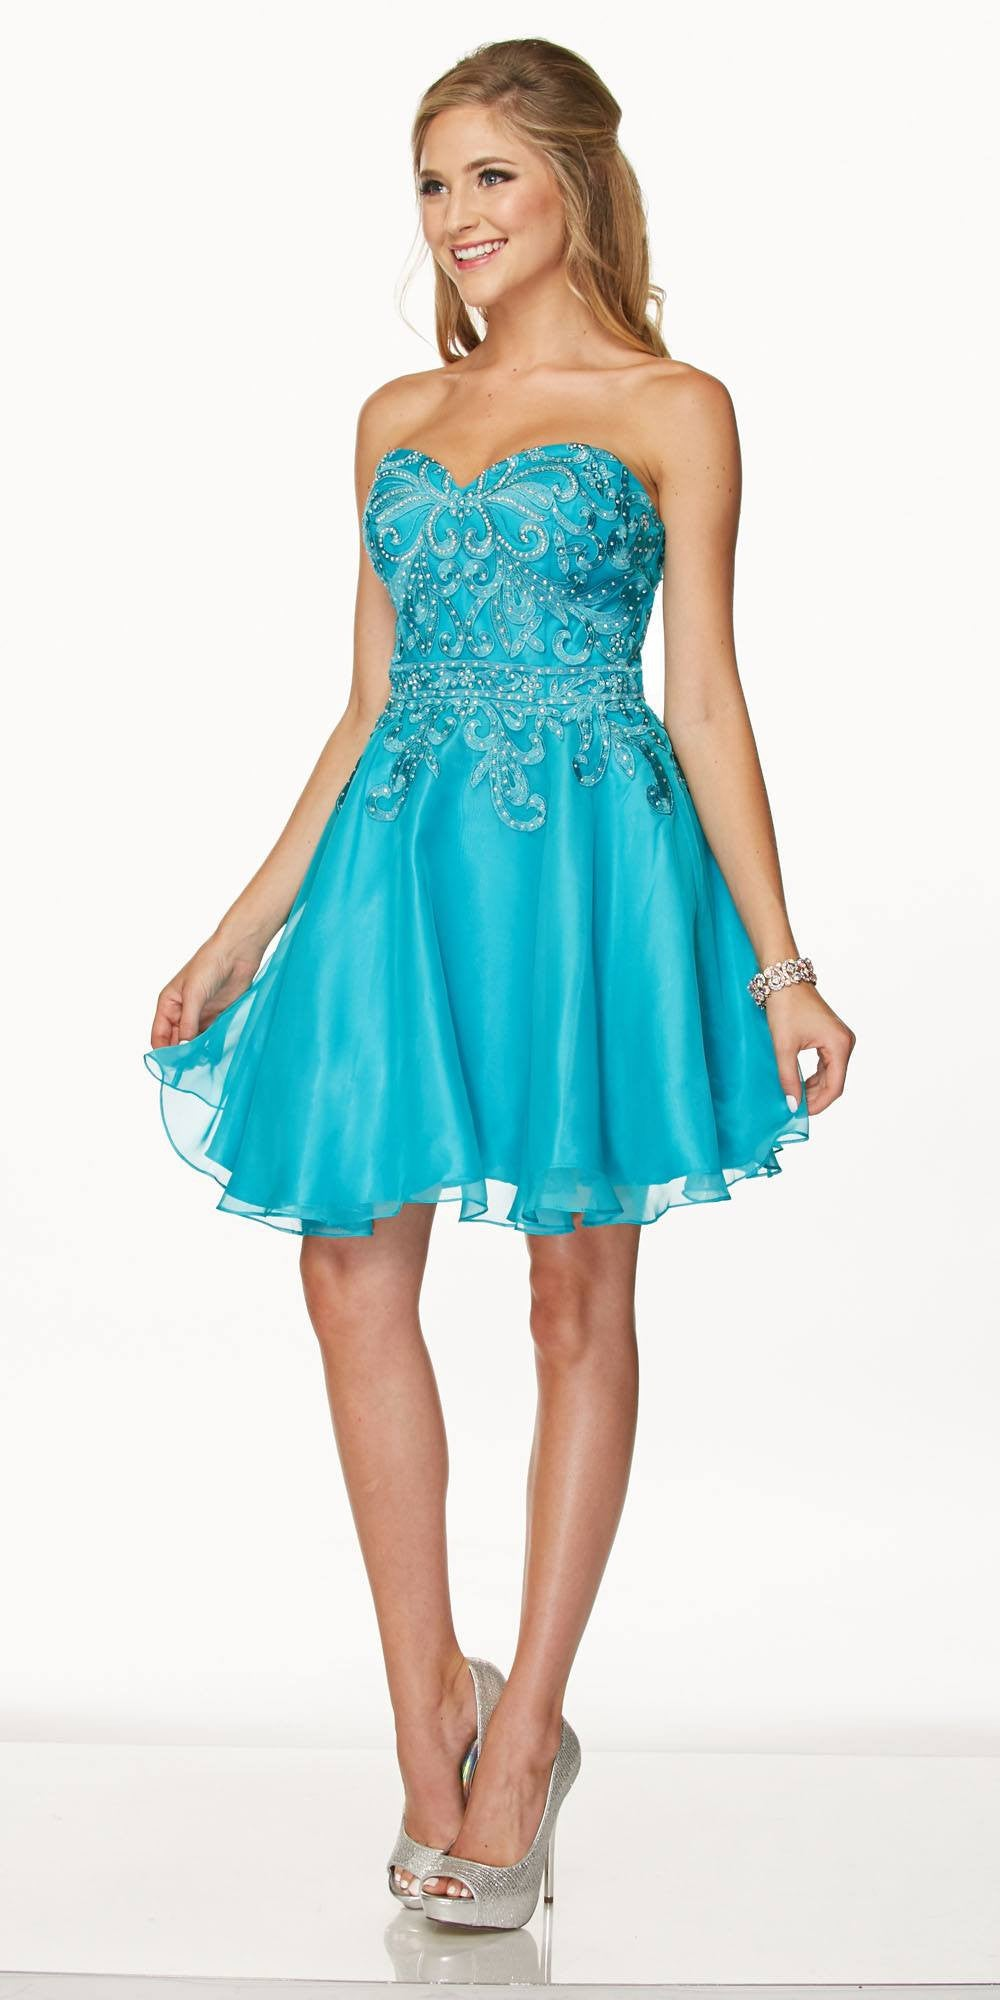 Homecoming turquoise dresses with straps